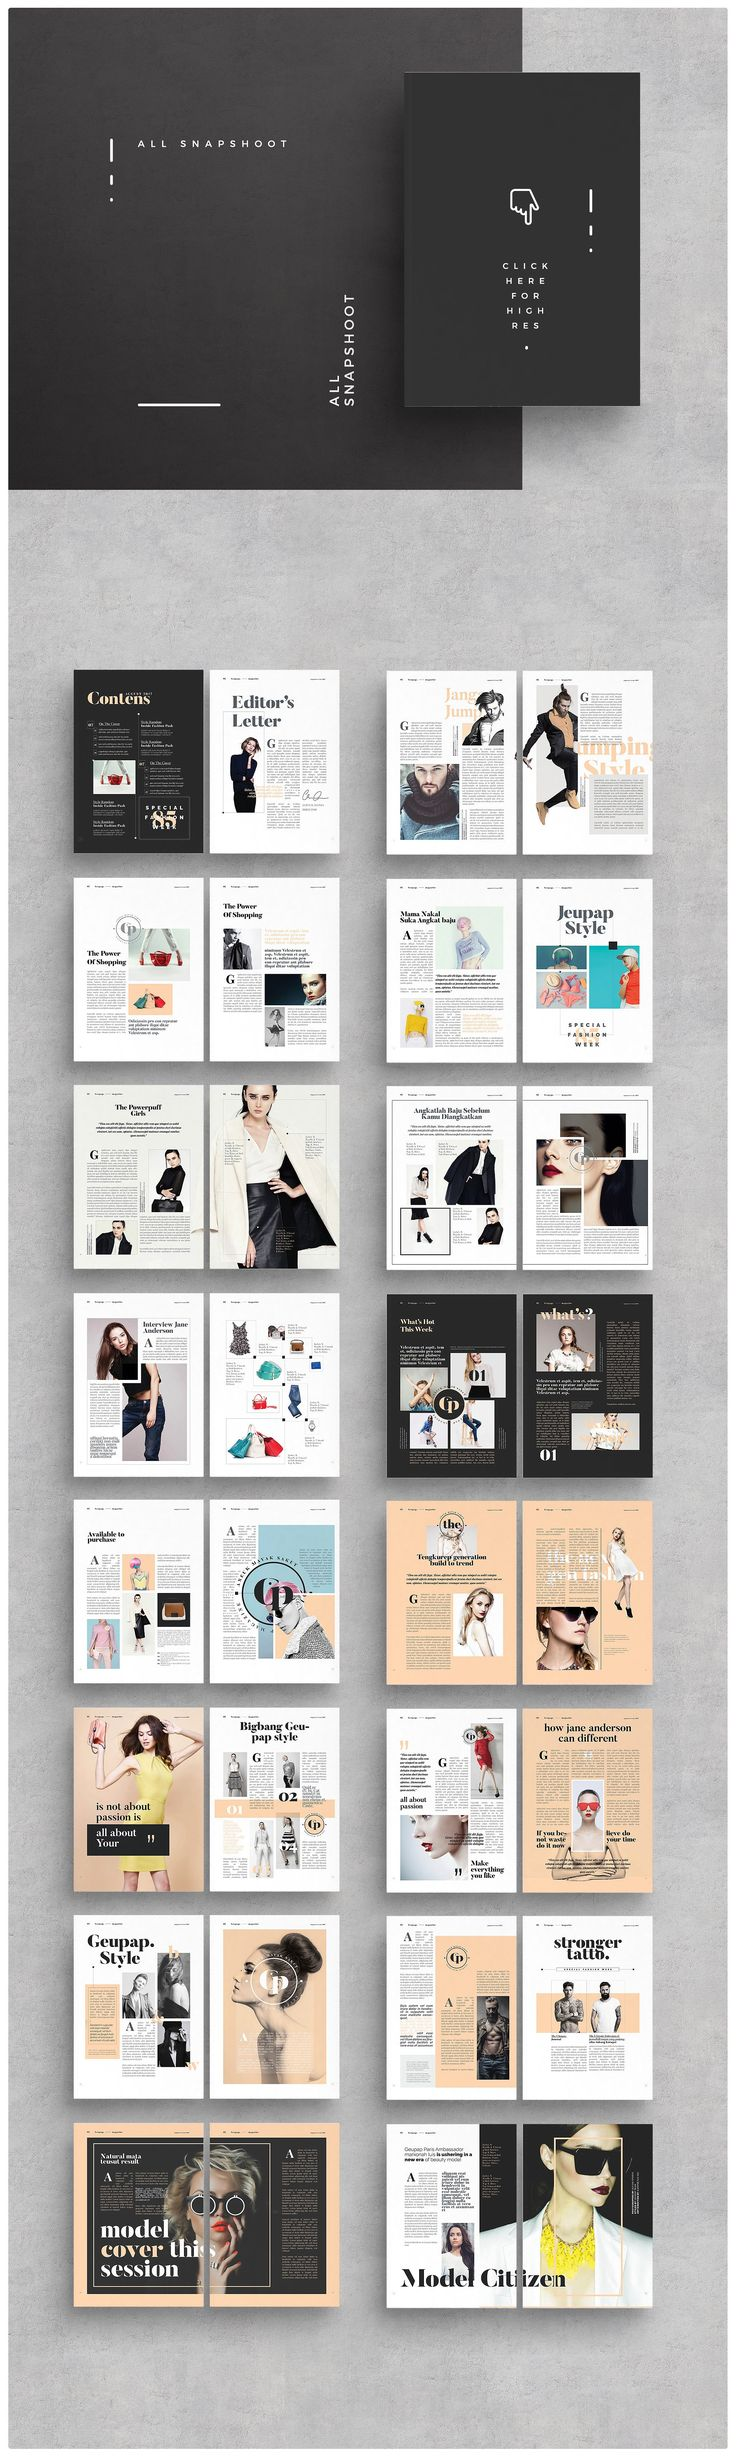 16 best Magazine and eBook Templates images on Pinterest | Indesign ...